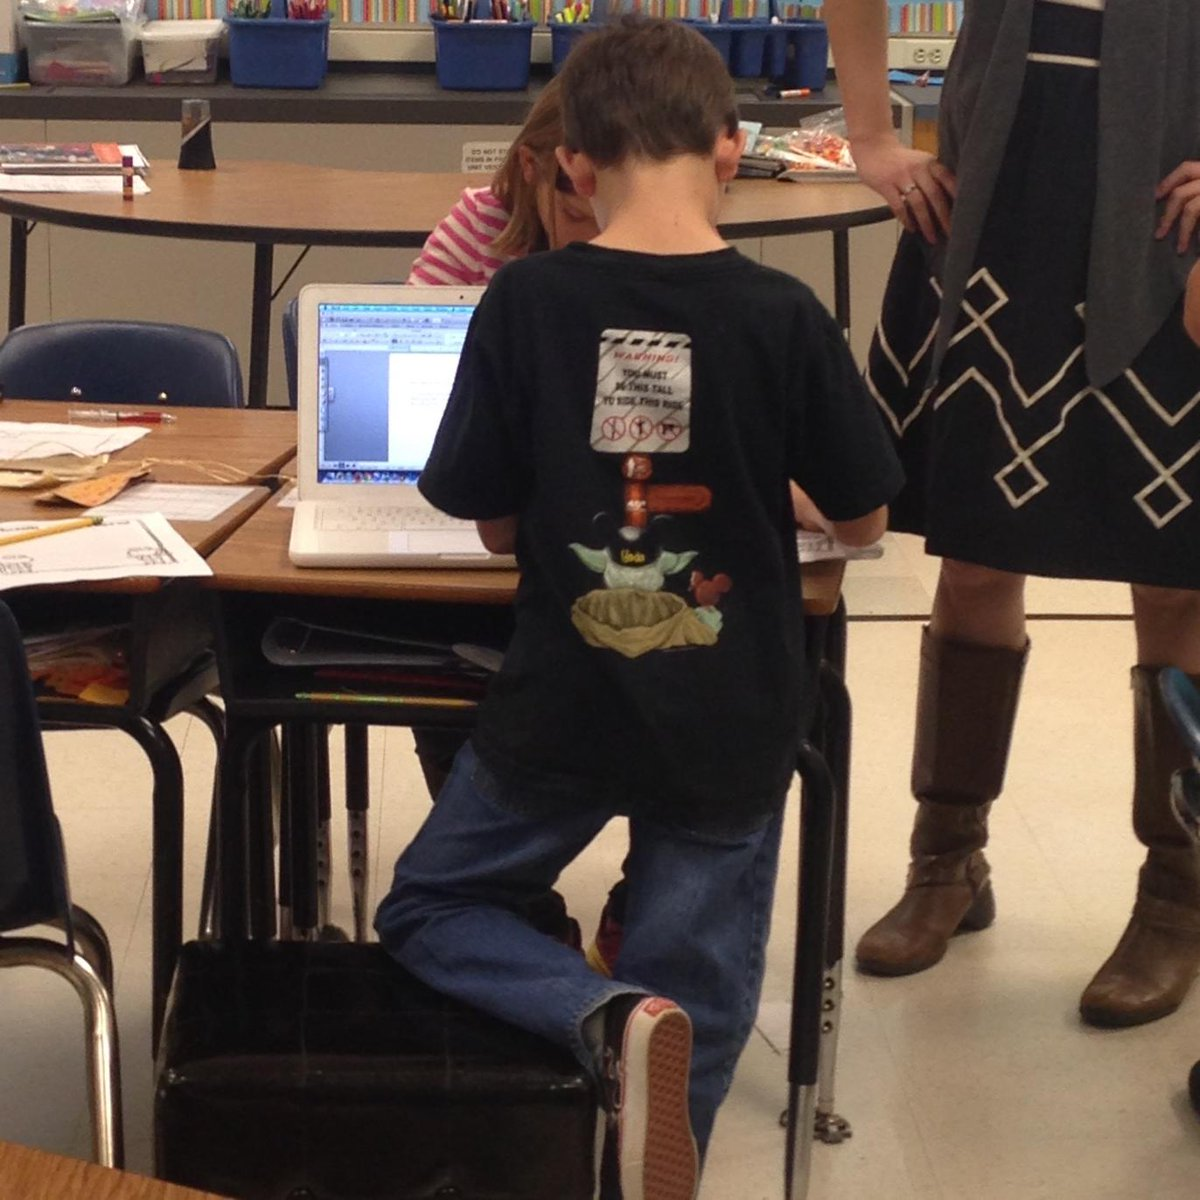 The human body / child or adult/ isn't made 2 sit still - standing as choice can sustain attention #acps http://t.co/aoaX0BSdvc